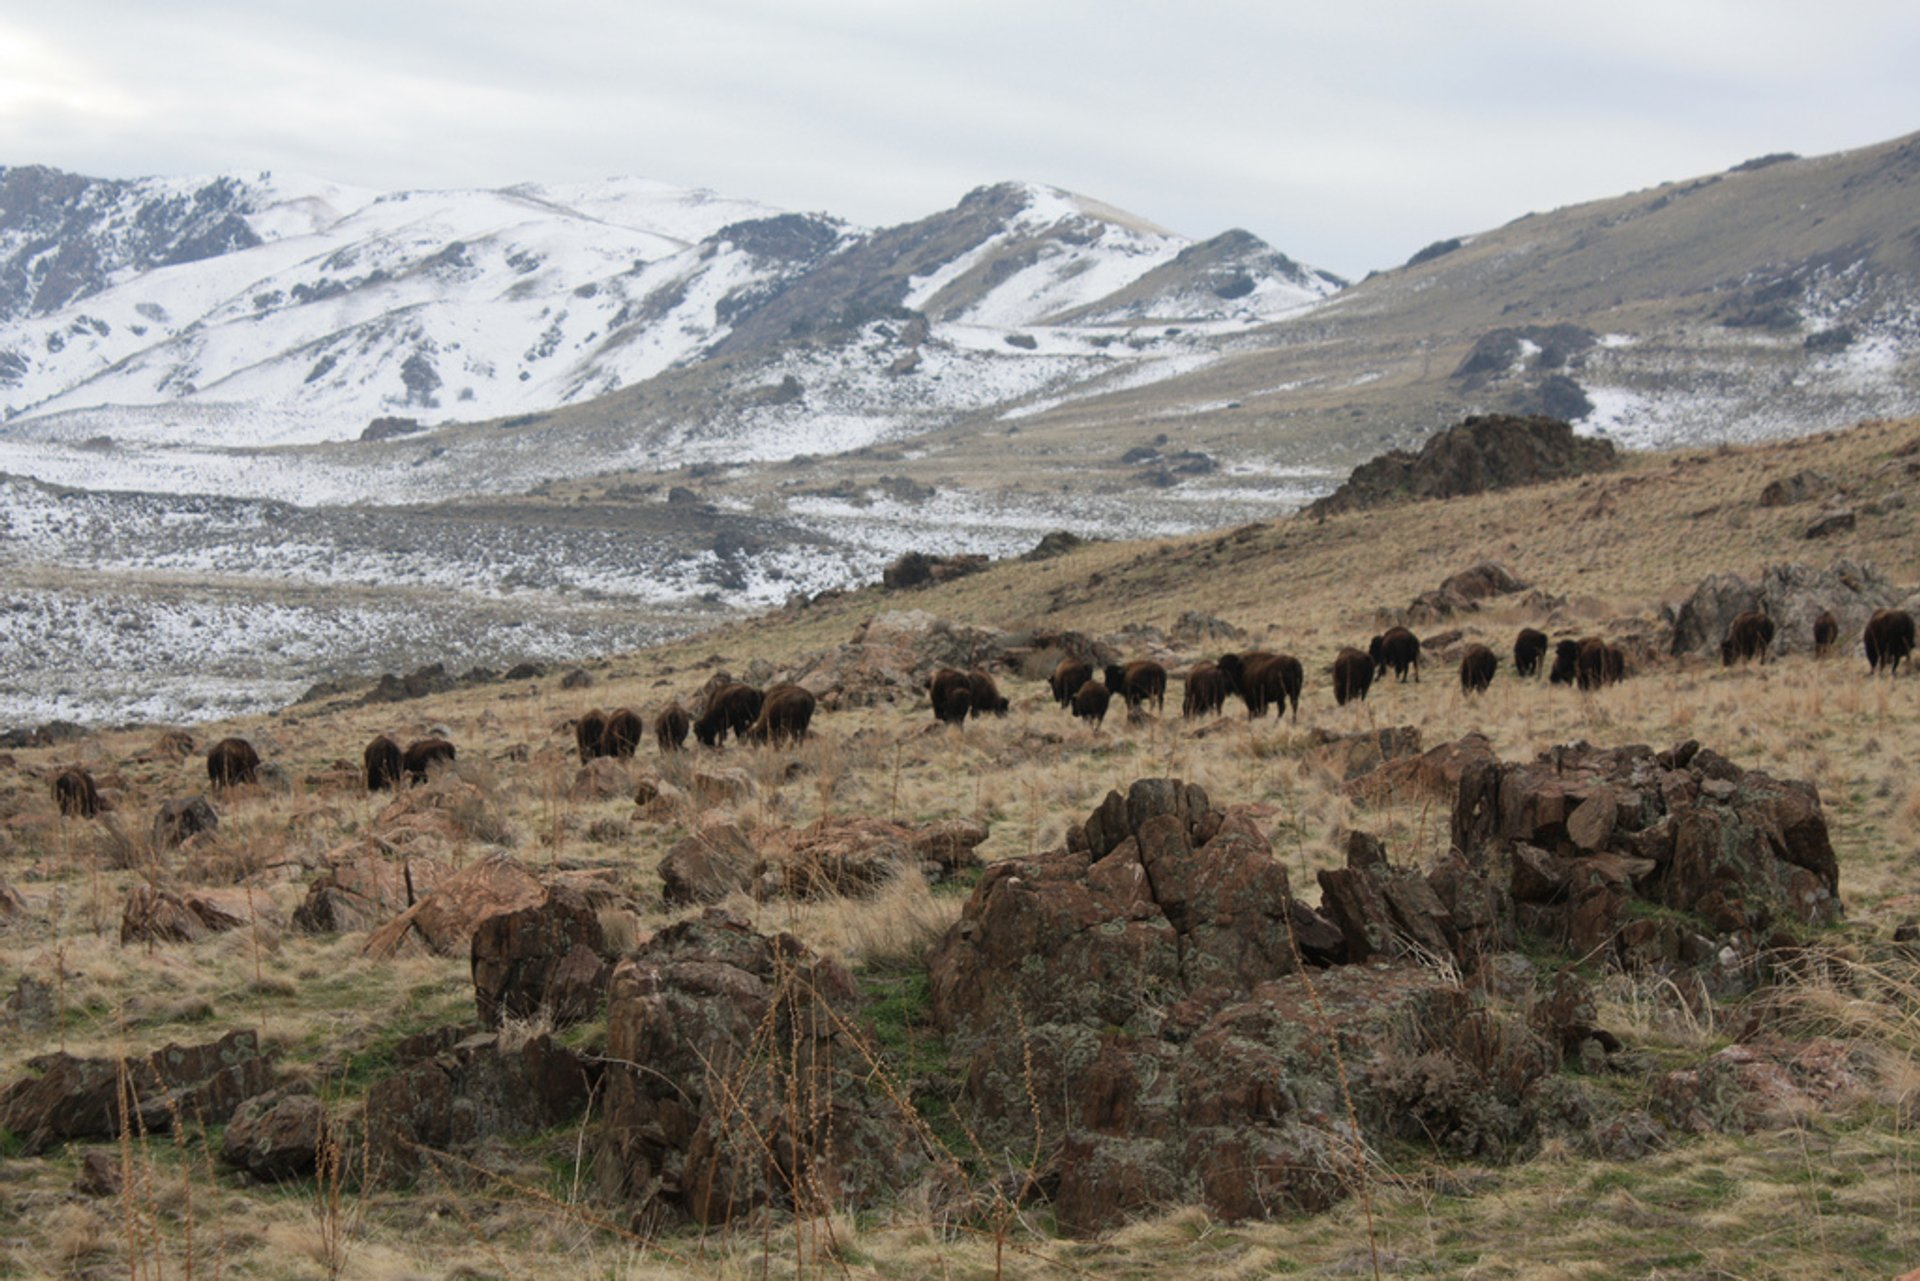 Bison at Antelope Island State Park 2020